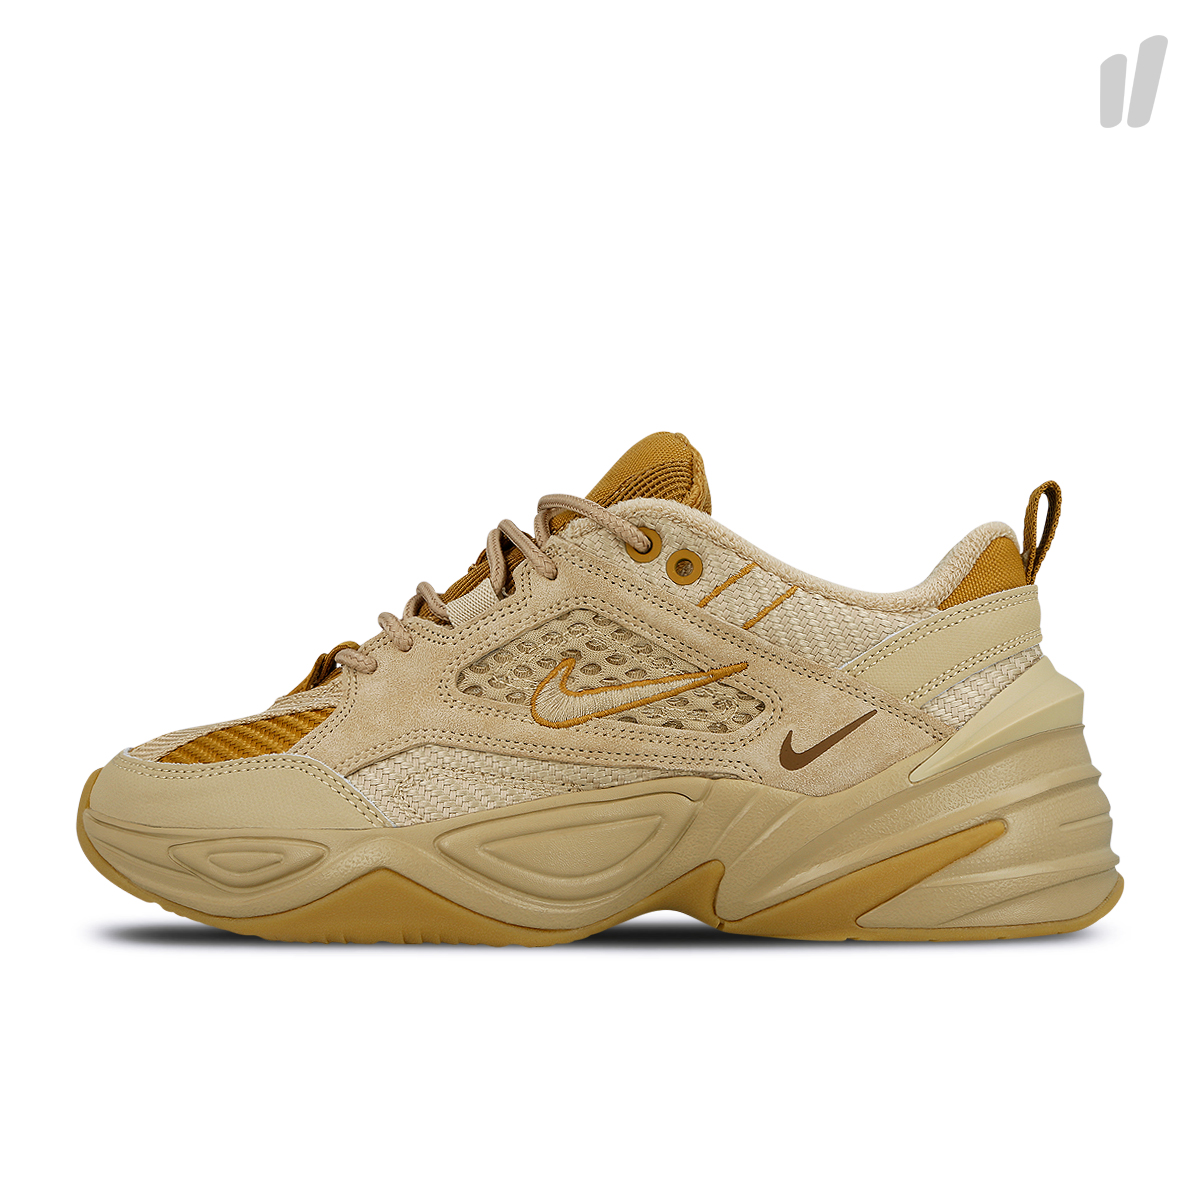 pretty nice 198a3 65654 Nike M2K Tekno SP Men s Shoe - Khaki   BV0074-200   FOOTY.COM